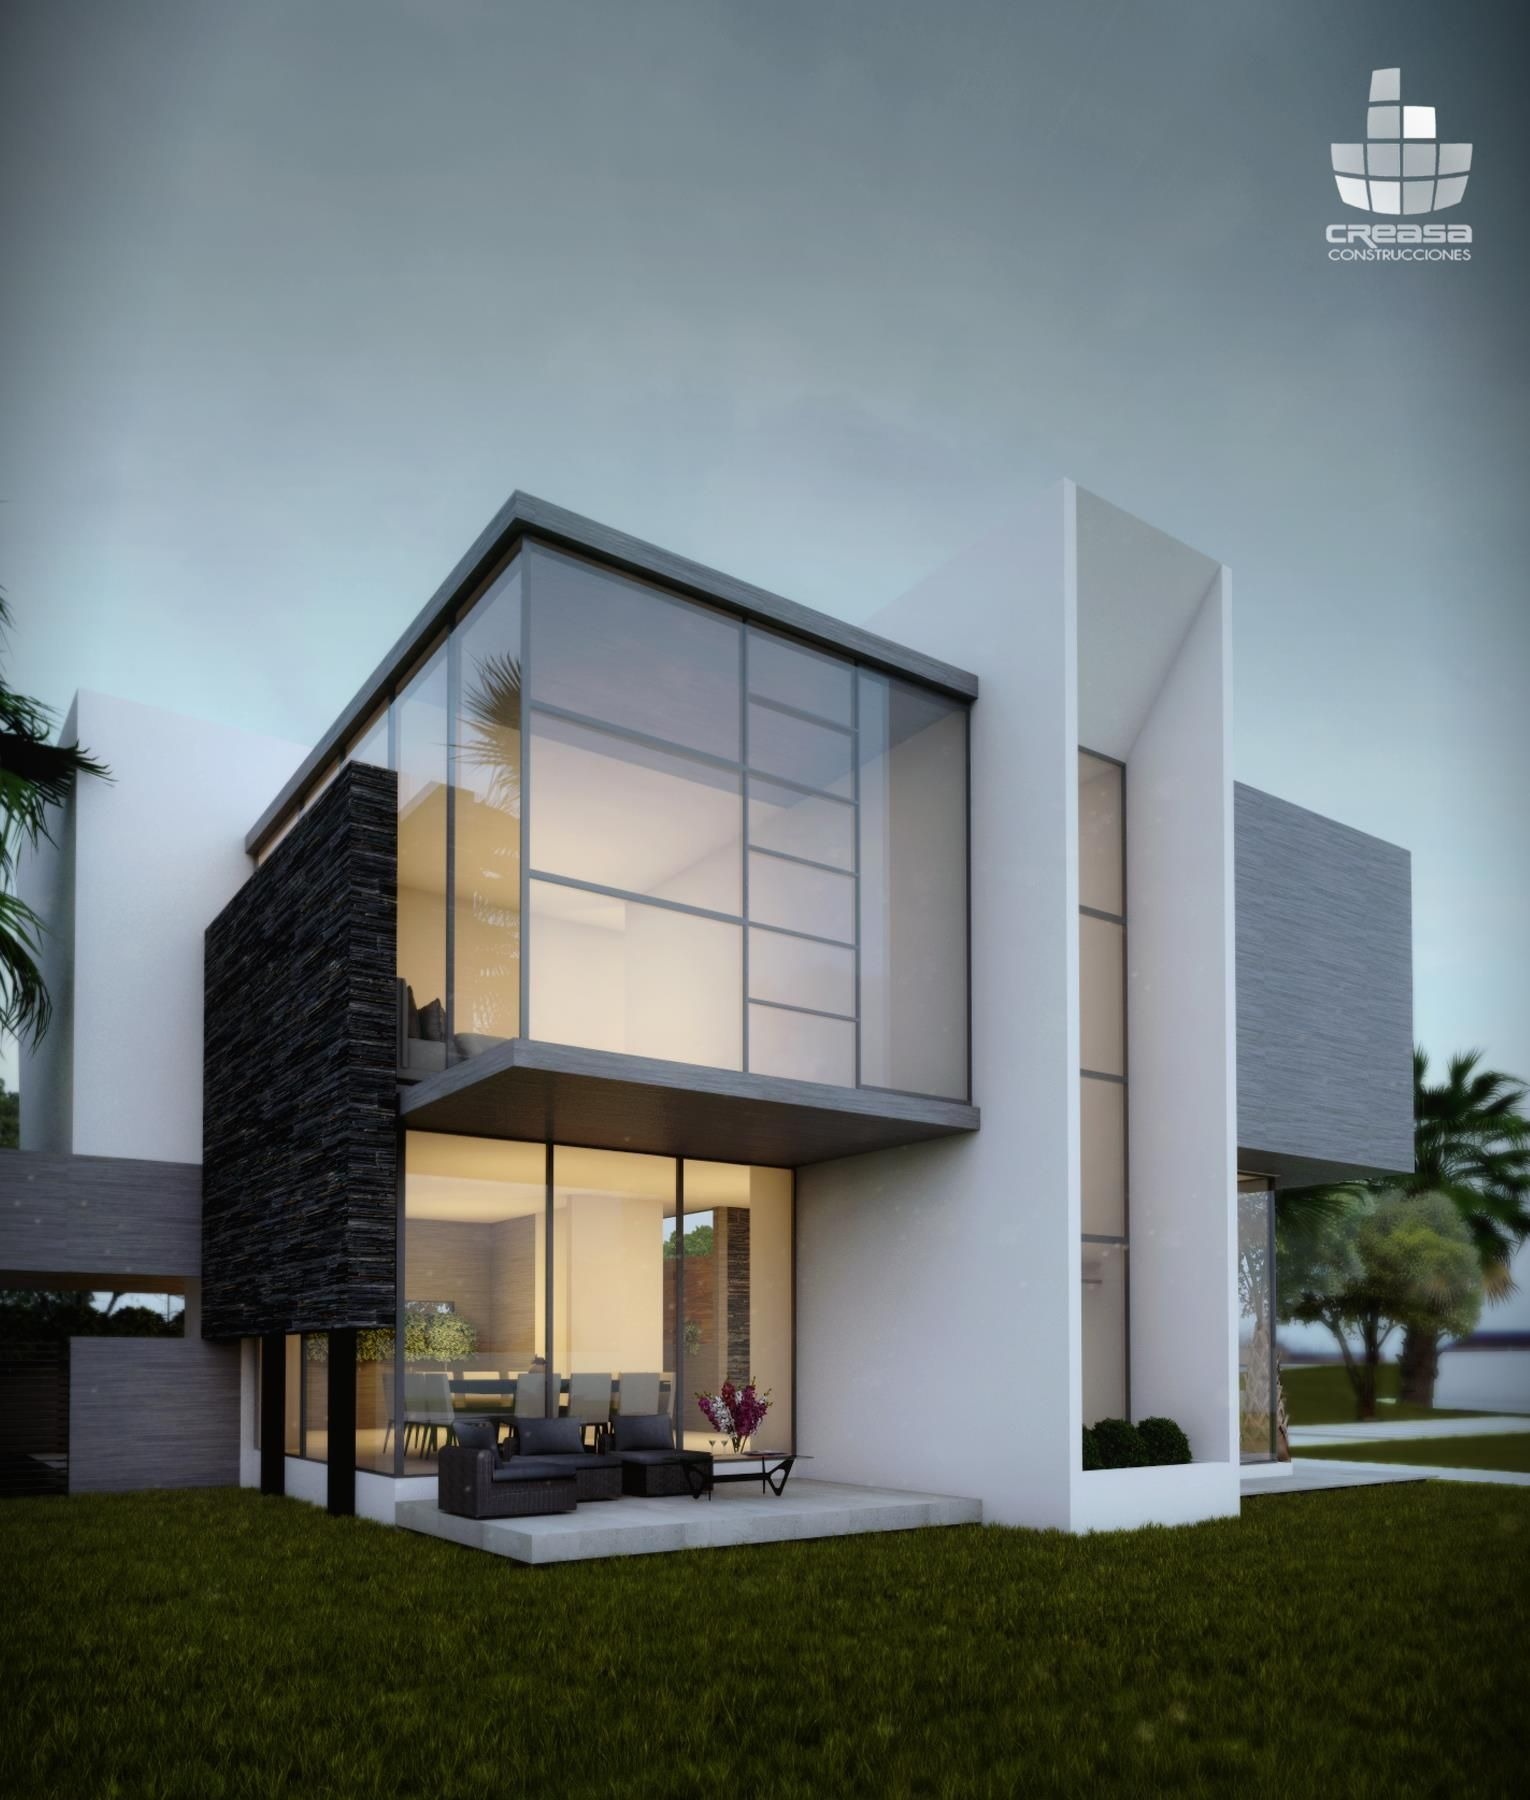 Creasa modern architecture pinterest villas house for Architecture design house interior